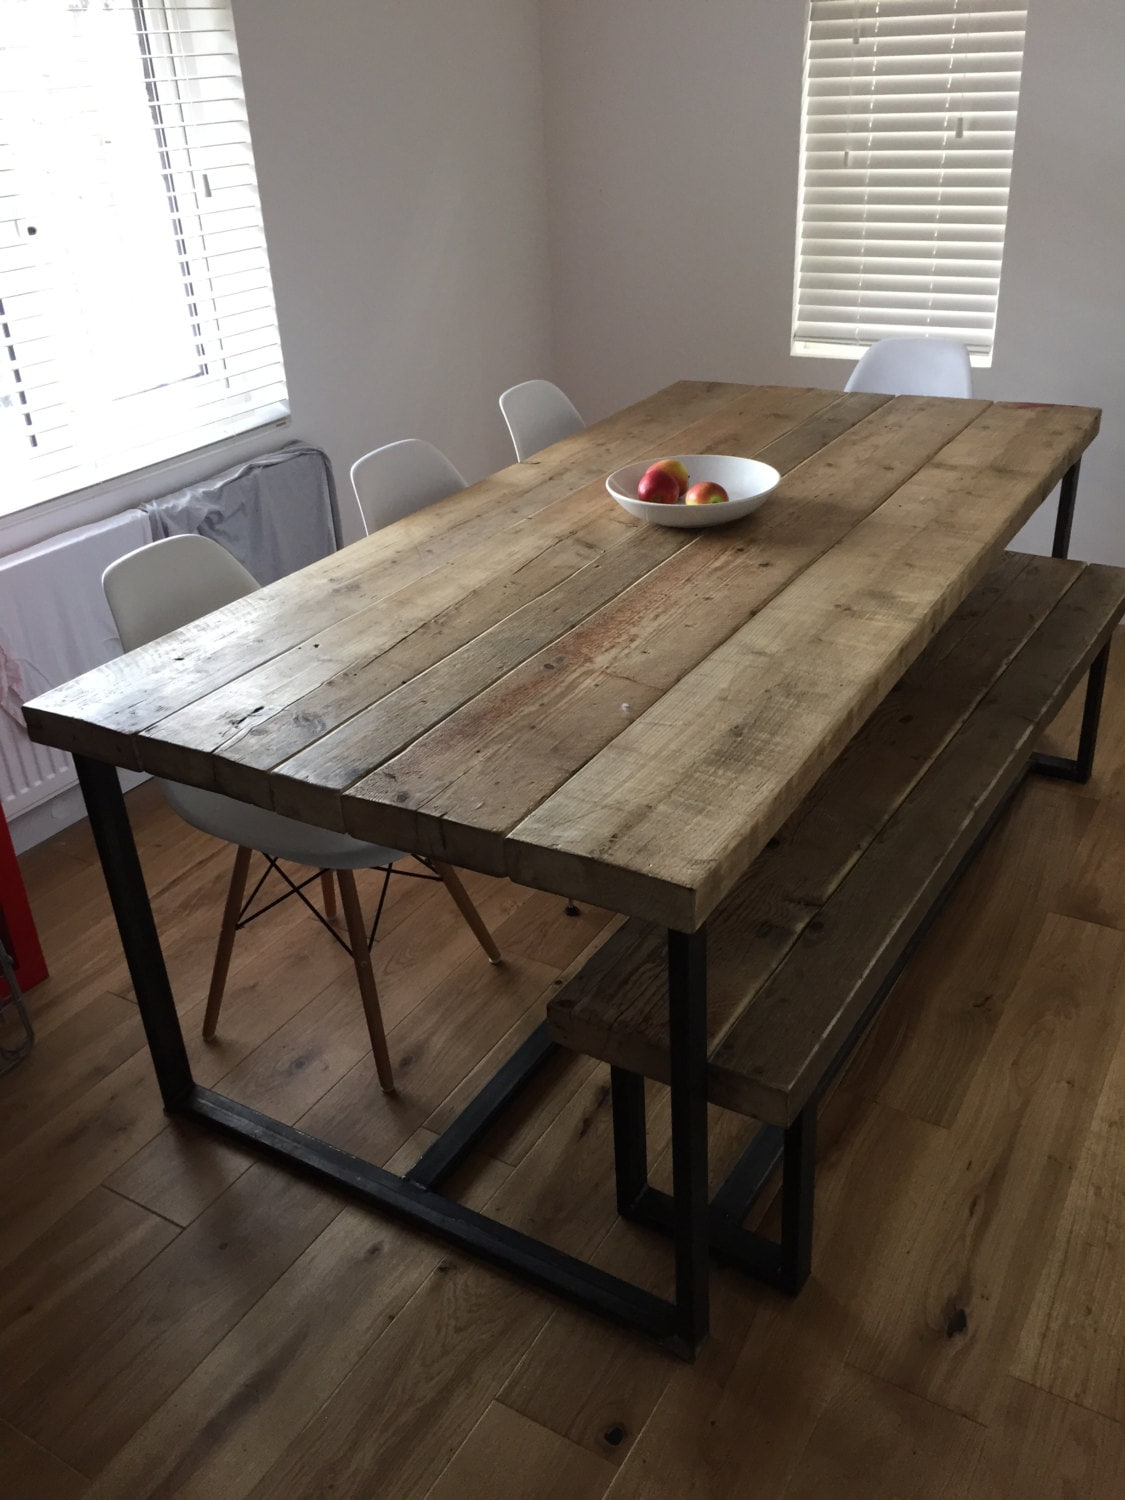 Reclaimed Wood Dining Table Nz Home Design